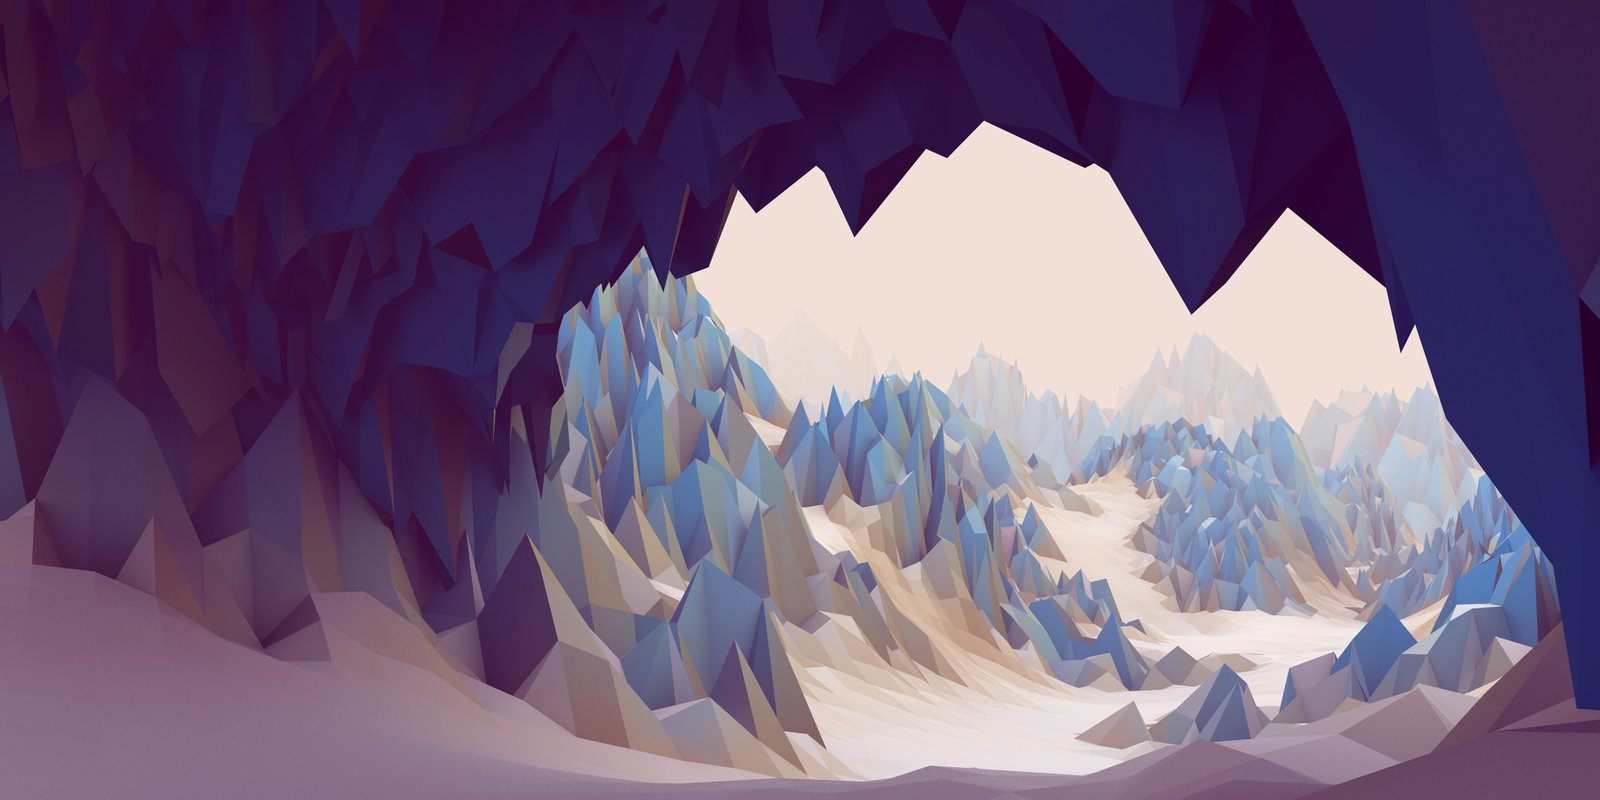 A Snowy Cave